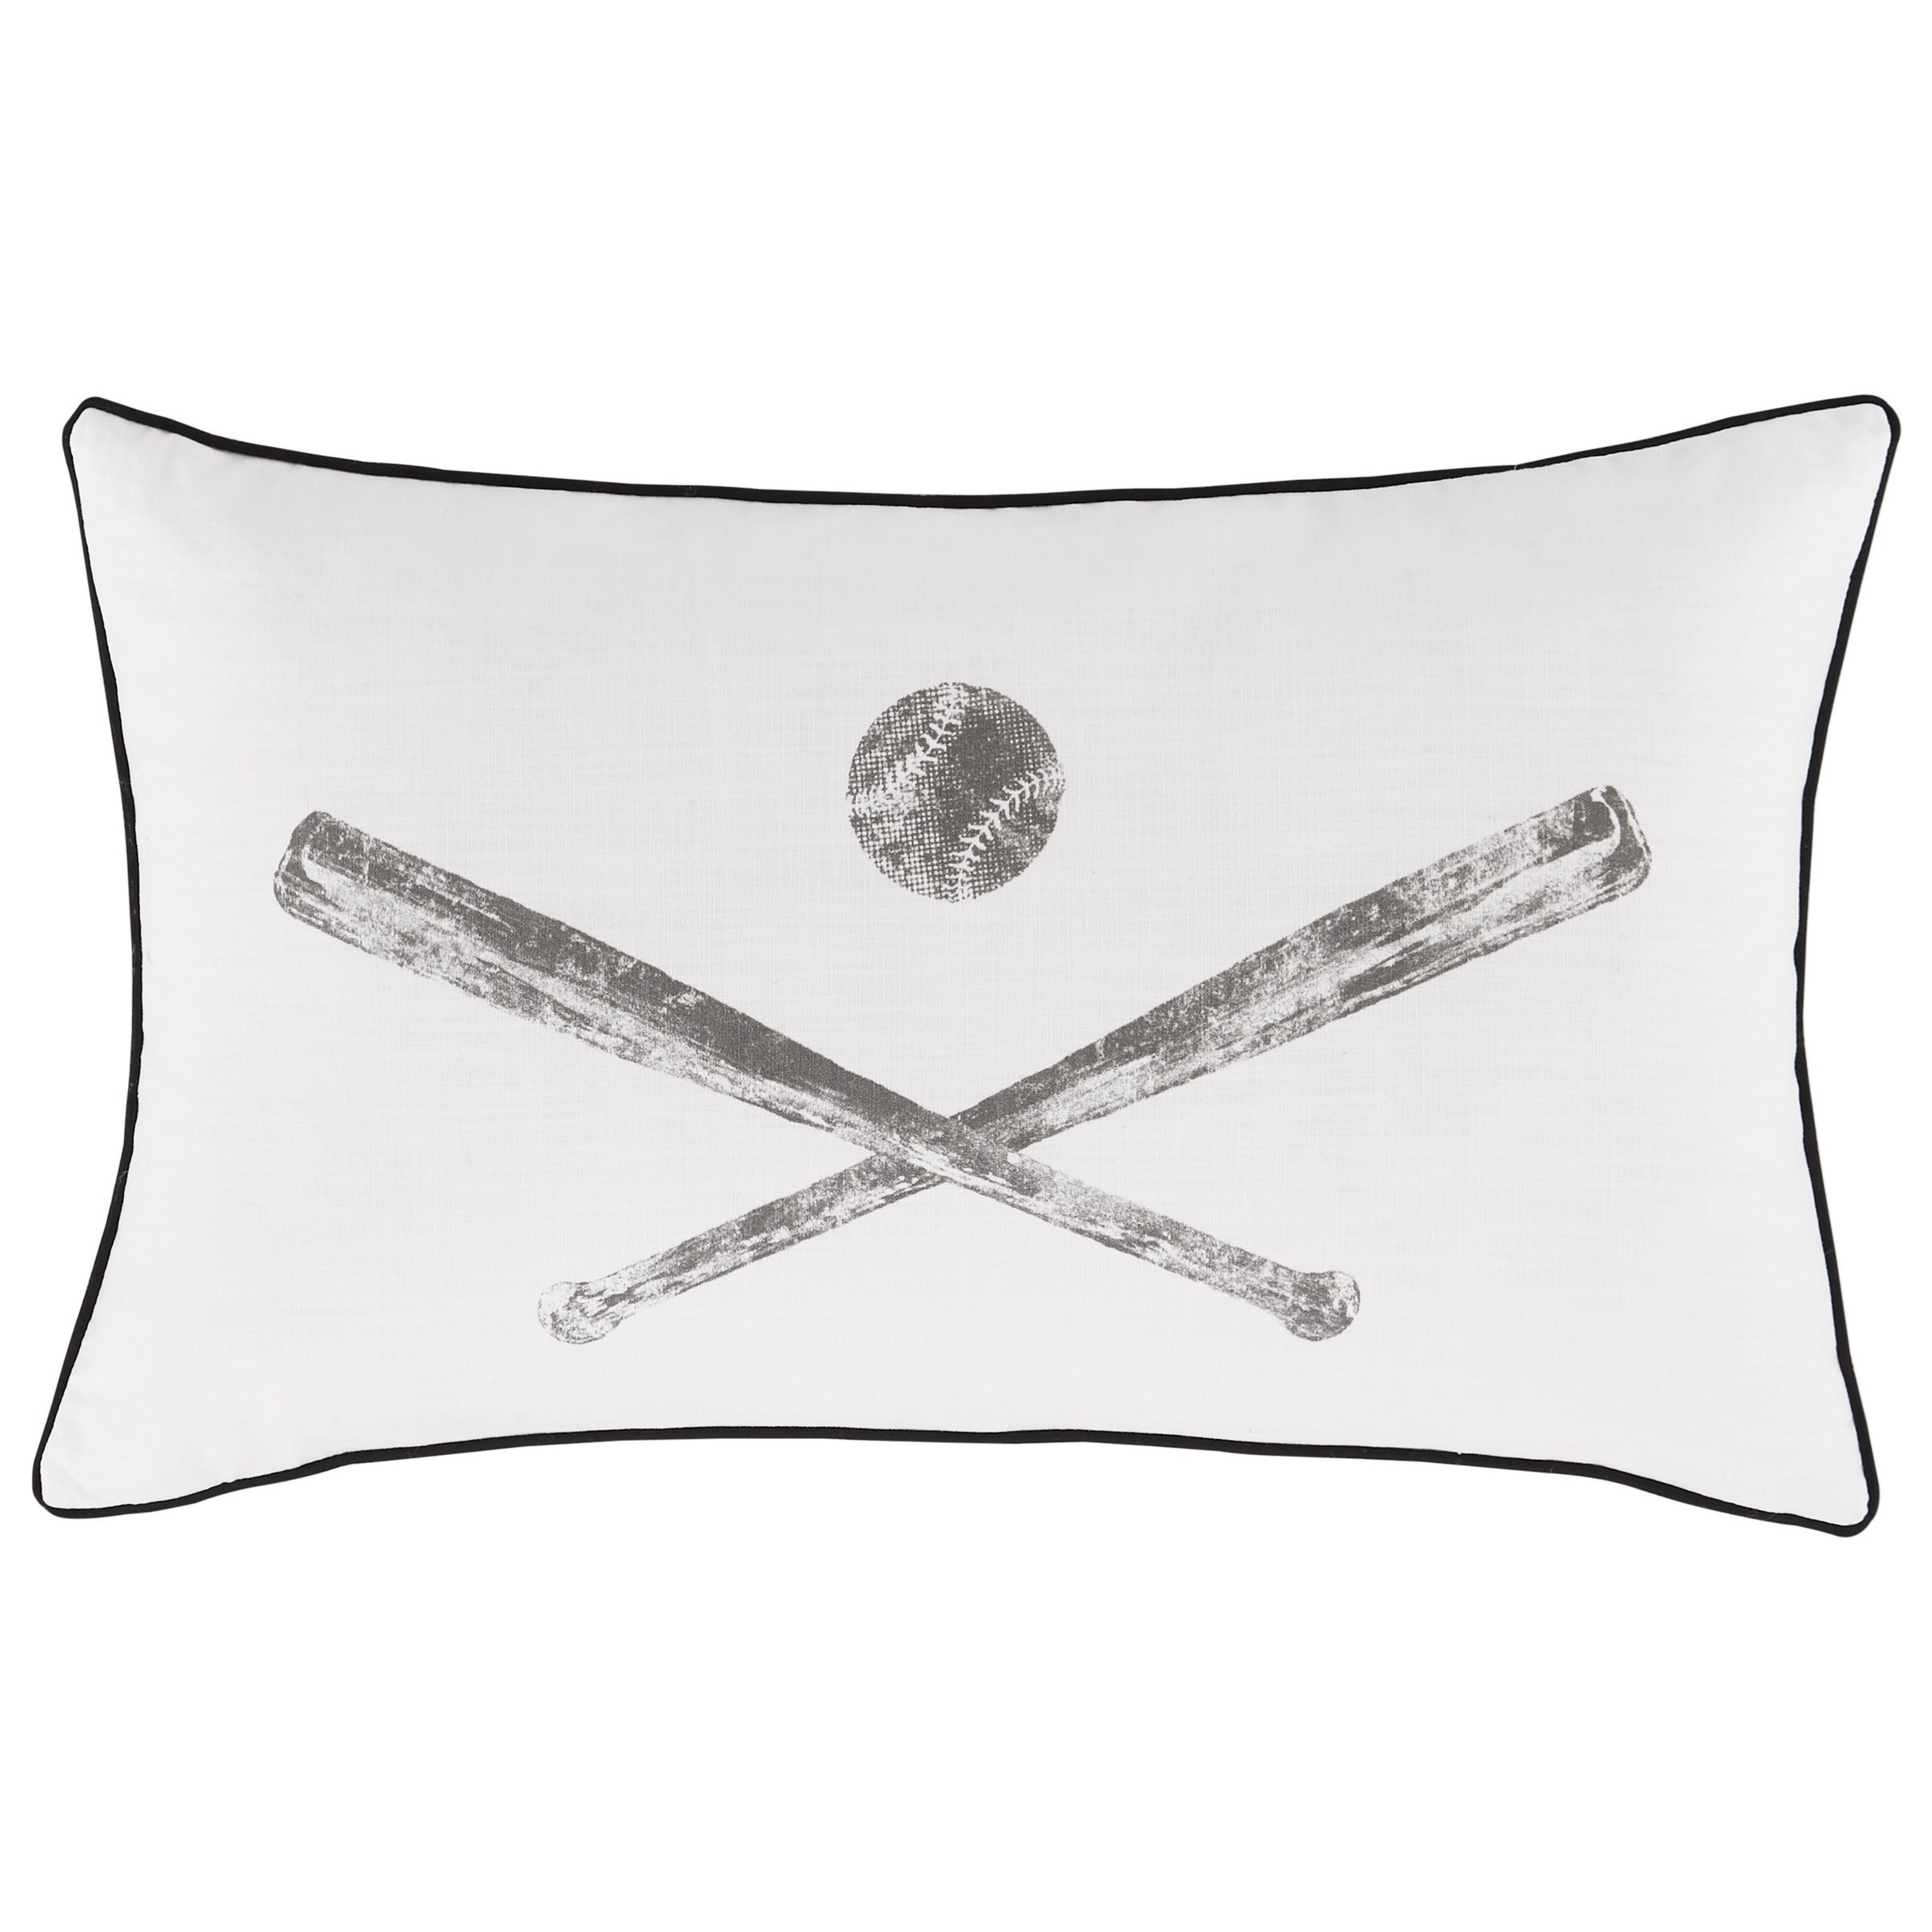 Pillows Waman Charcoal Pillow by Signature Design by Ashley at Zak's Warehouse Clearance Center